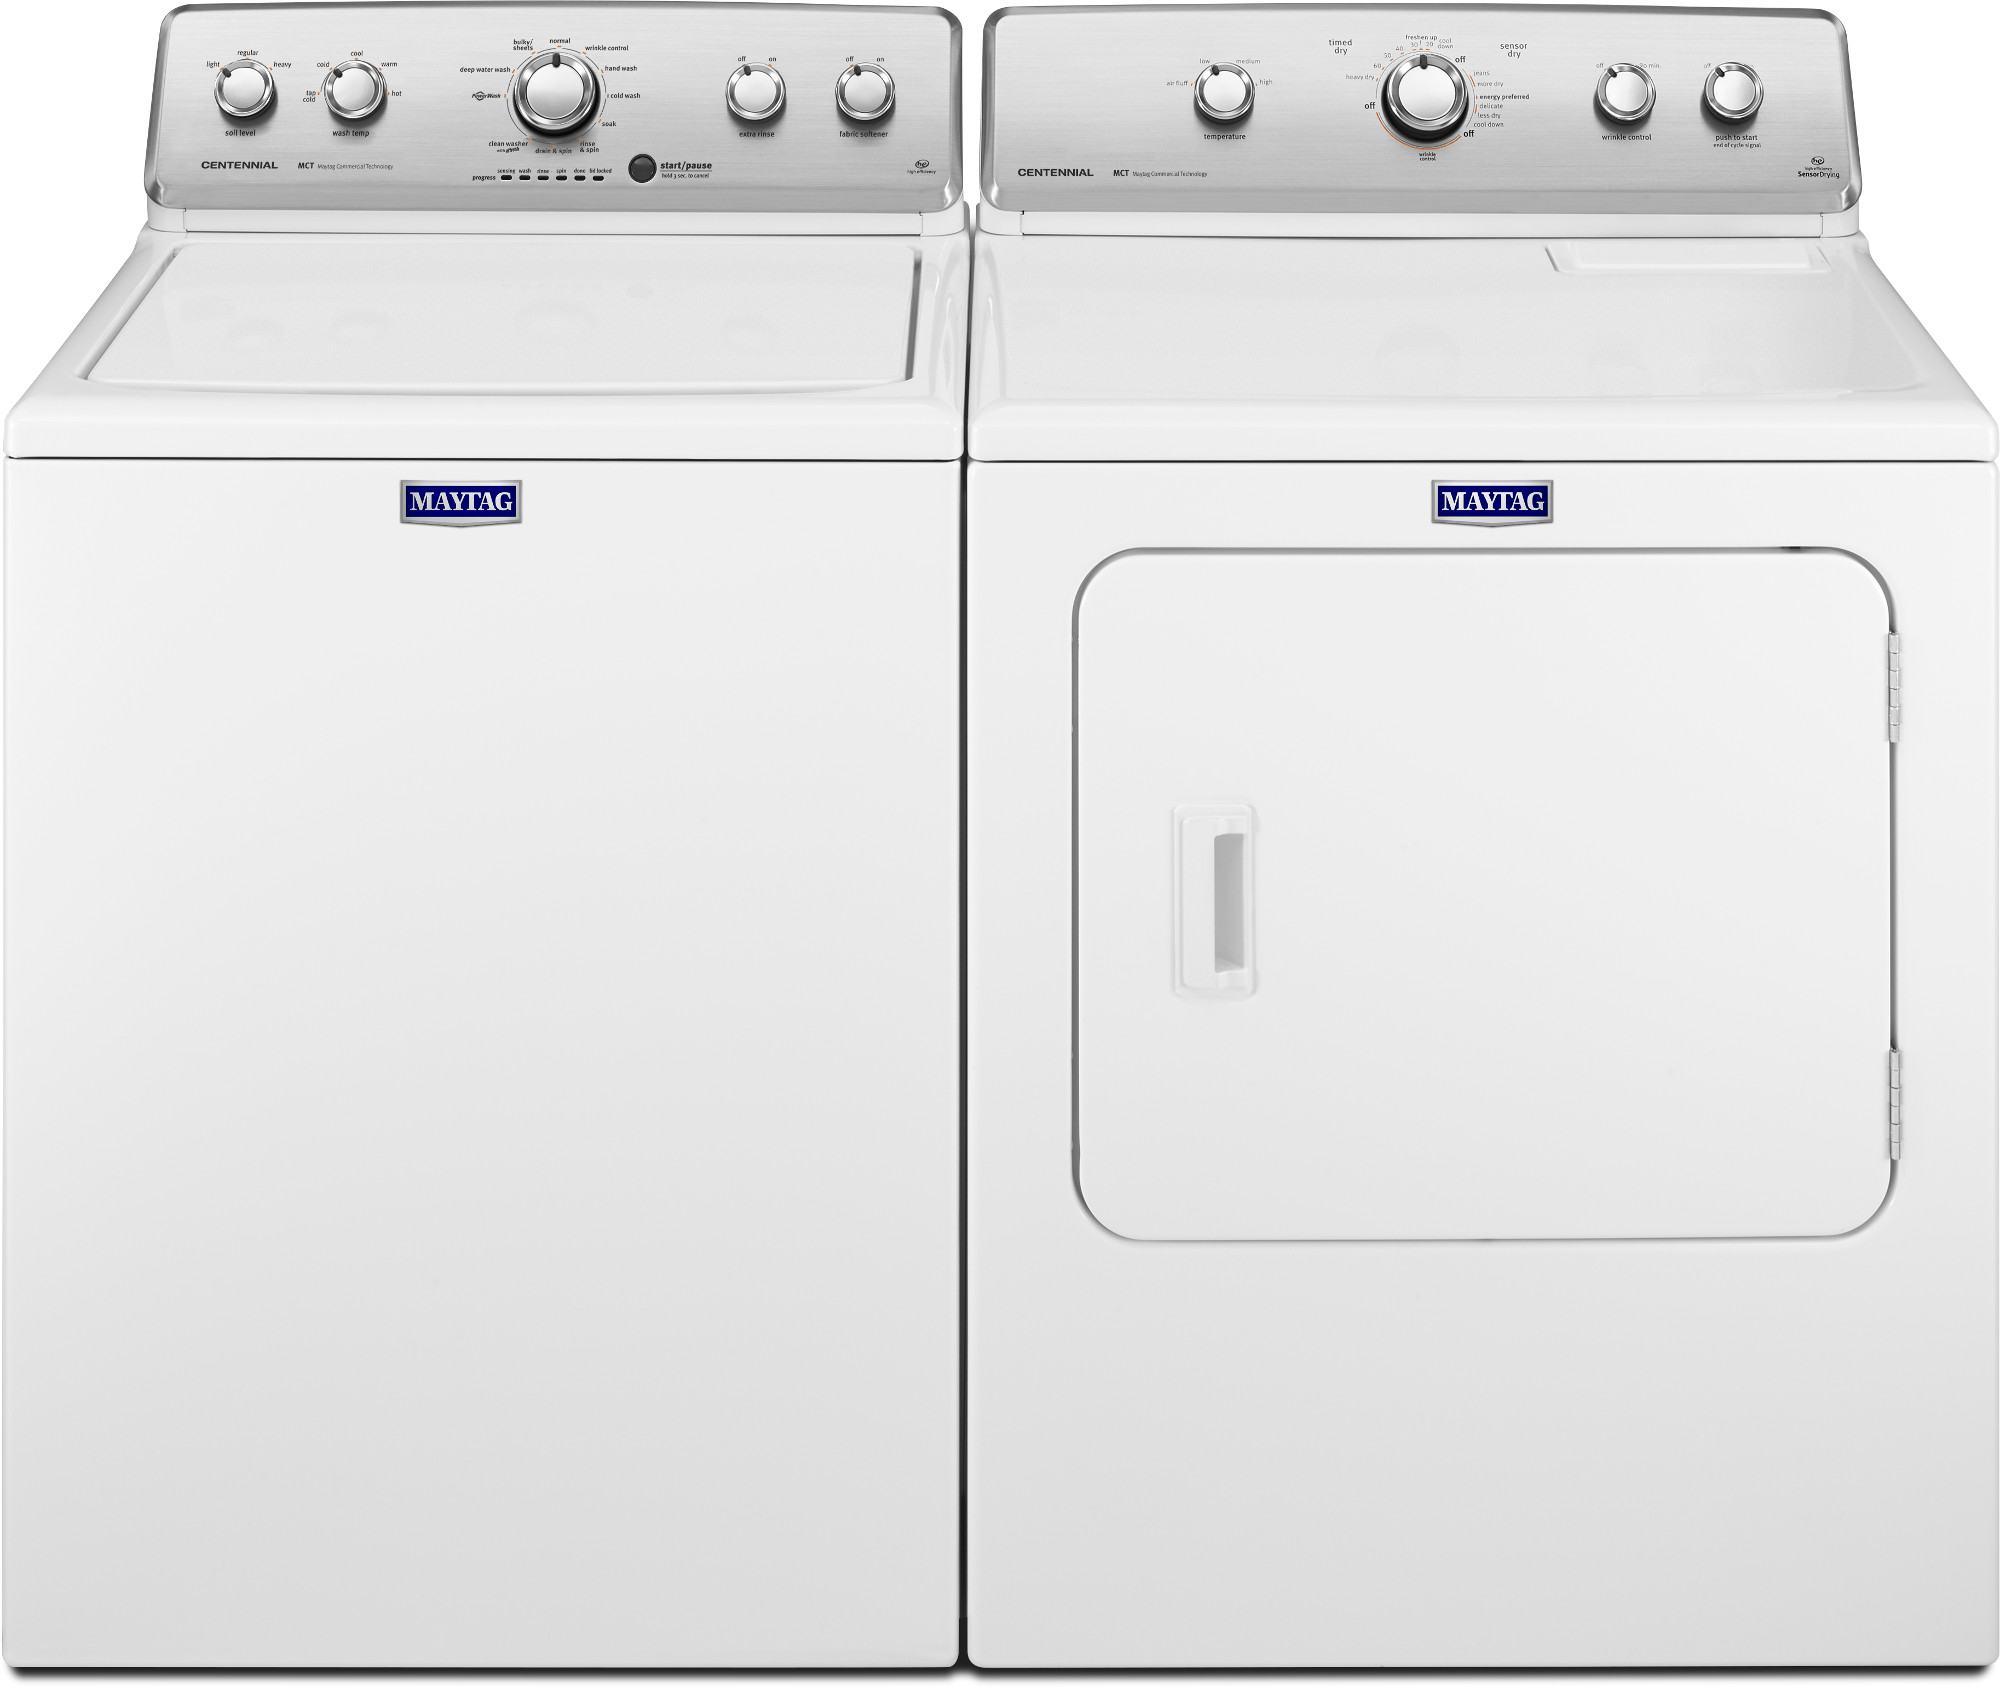 Maytag MVWC555DW 4.3 cu. ft. Centennial® Top Load Washer - White